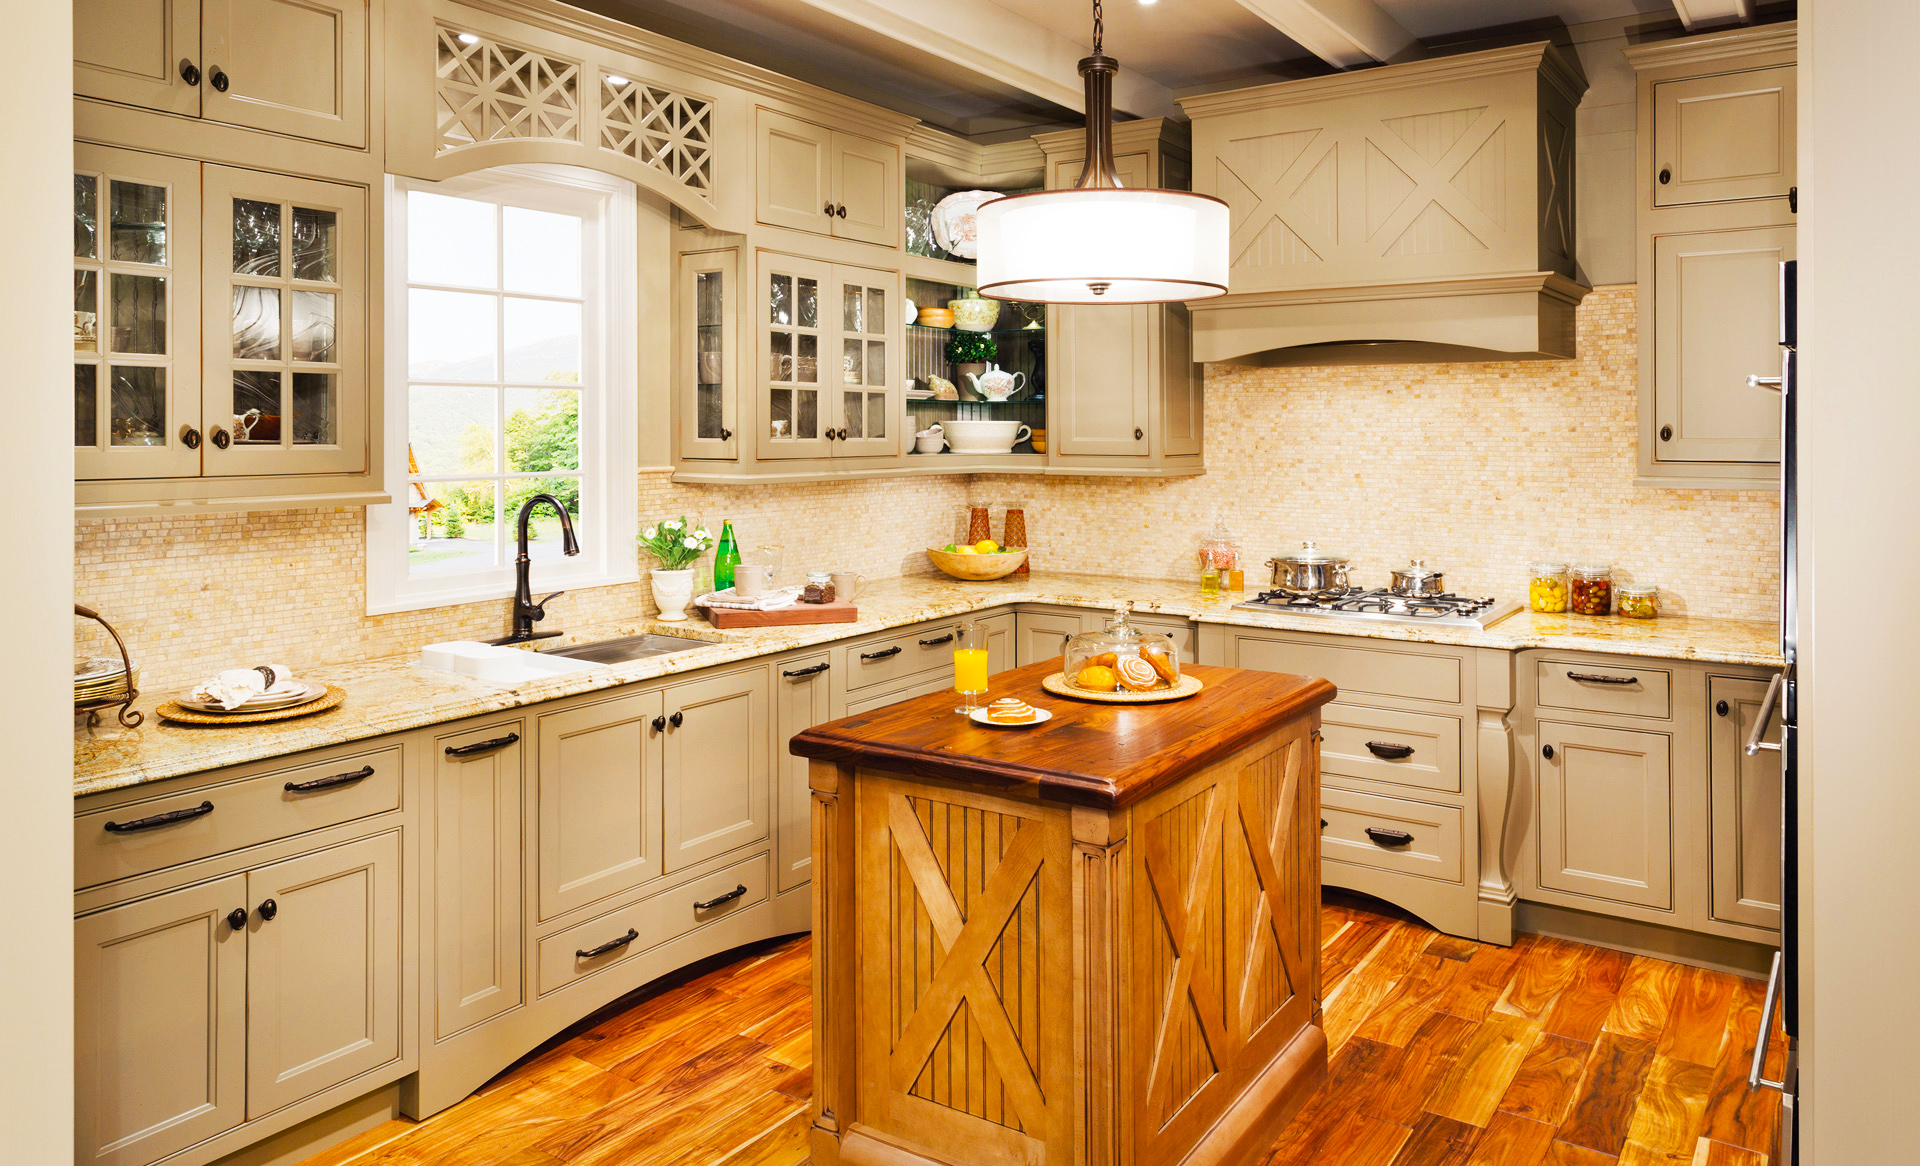 10 Kitchen Cabinet Tips: Ideas For Custom Kitchen Cabinets